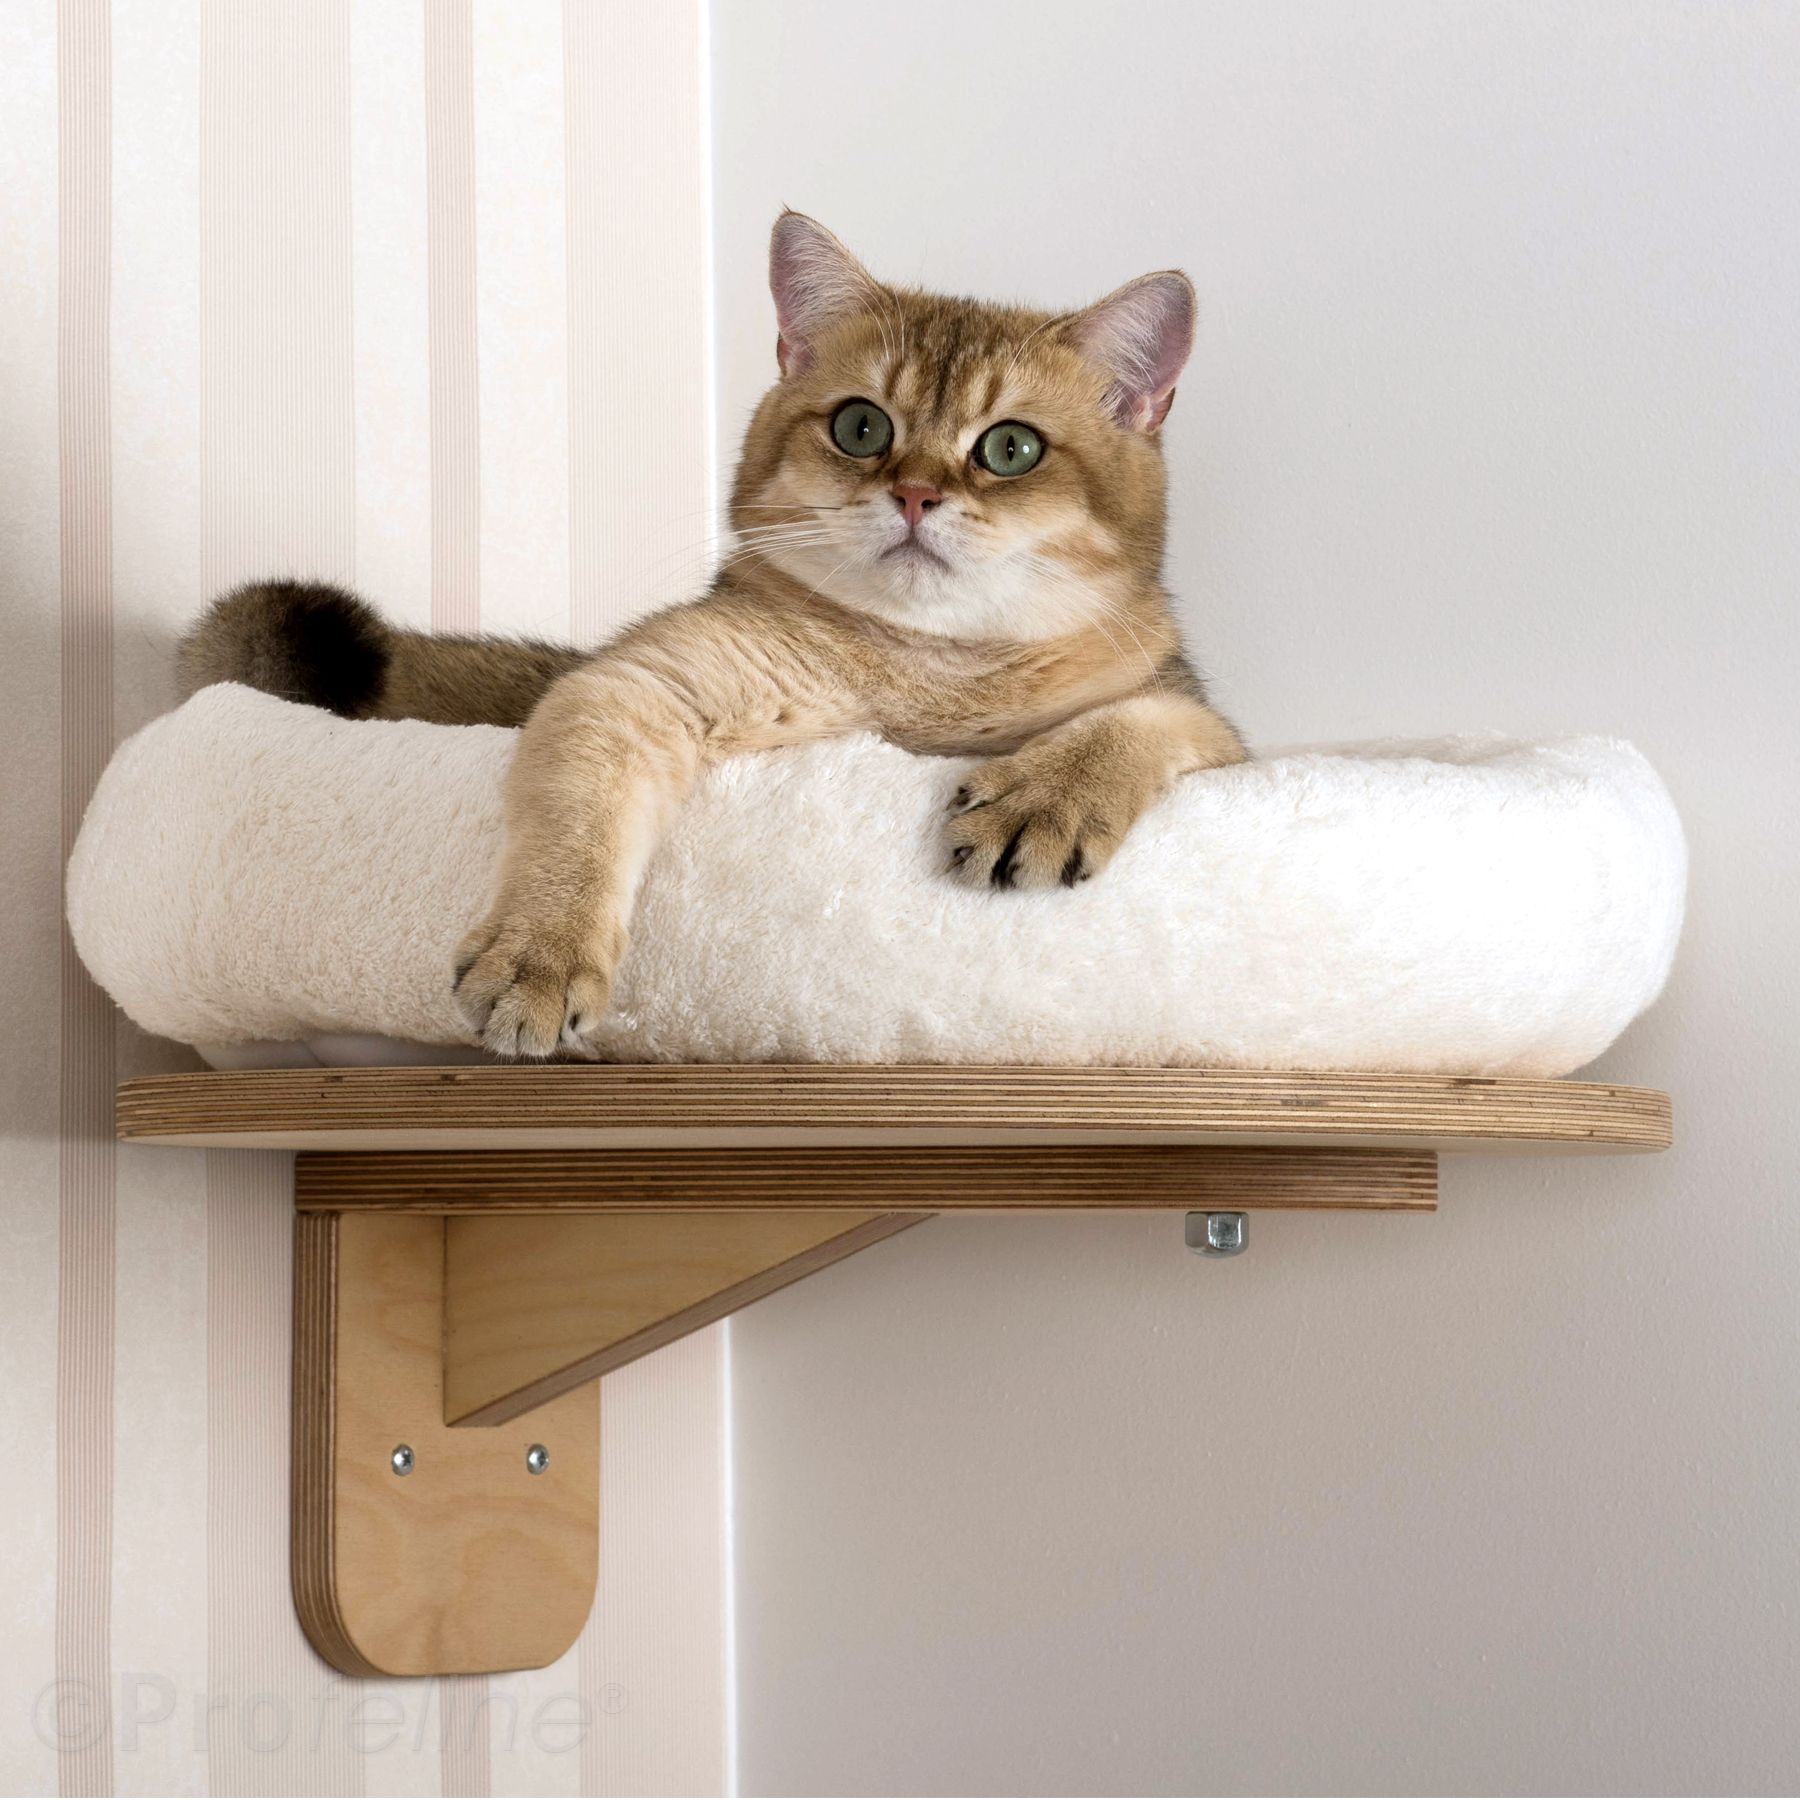 wall lounger with cat bed wandliege mit katzenbett climbing wall for cats pinterest. Black Bedroom Furniture Sets. Home Design Ideas